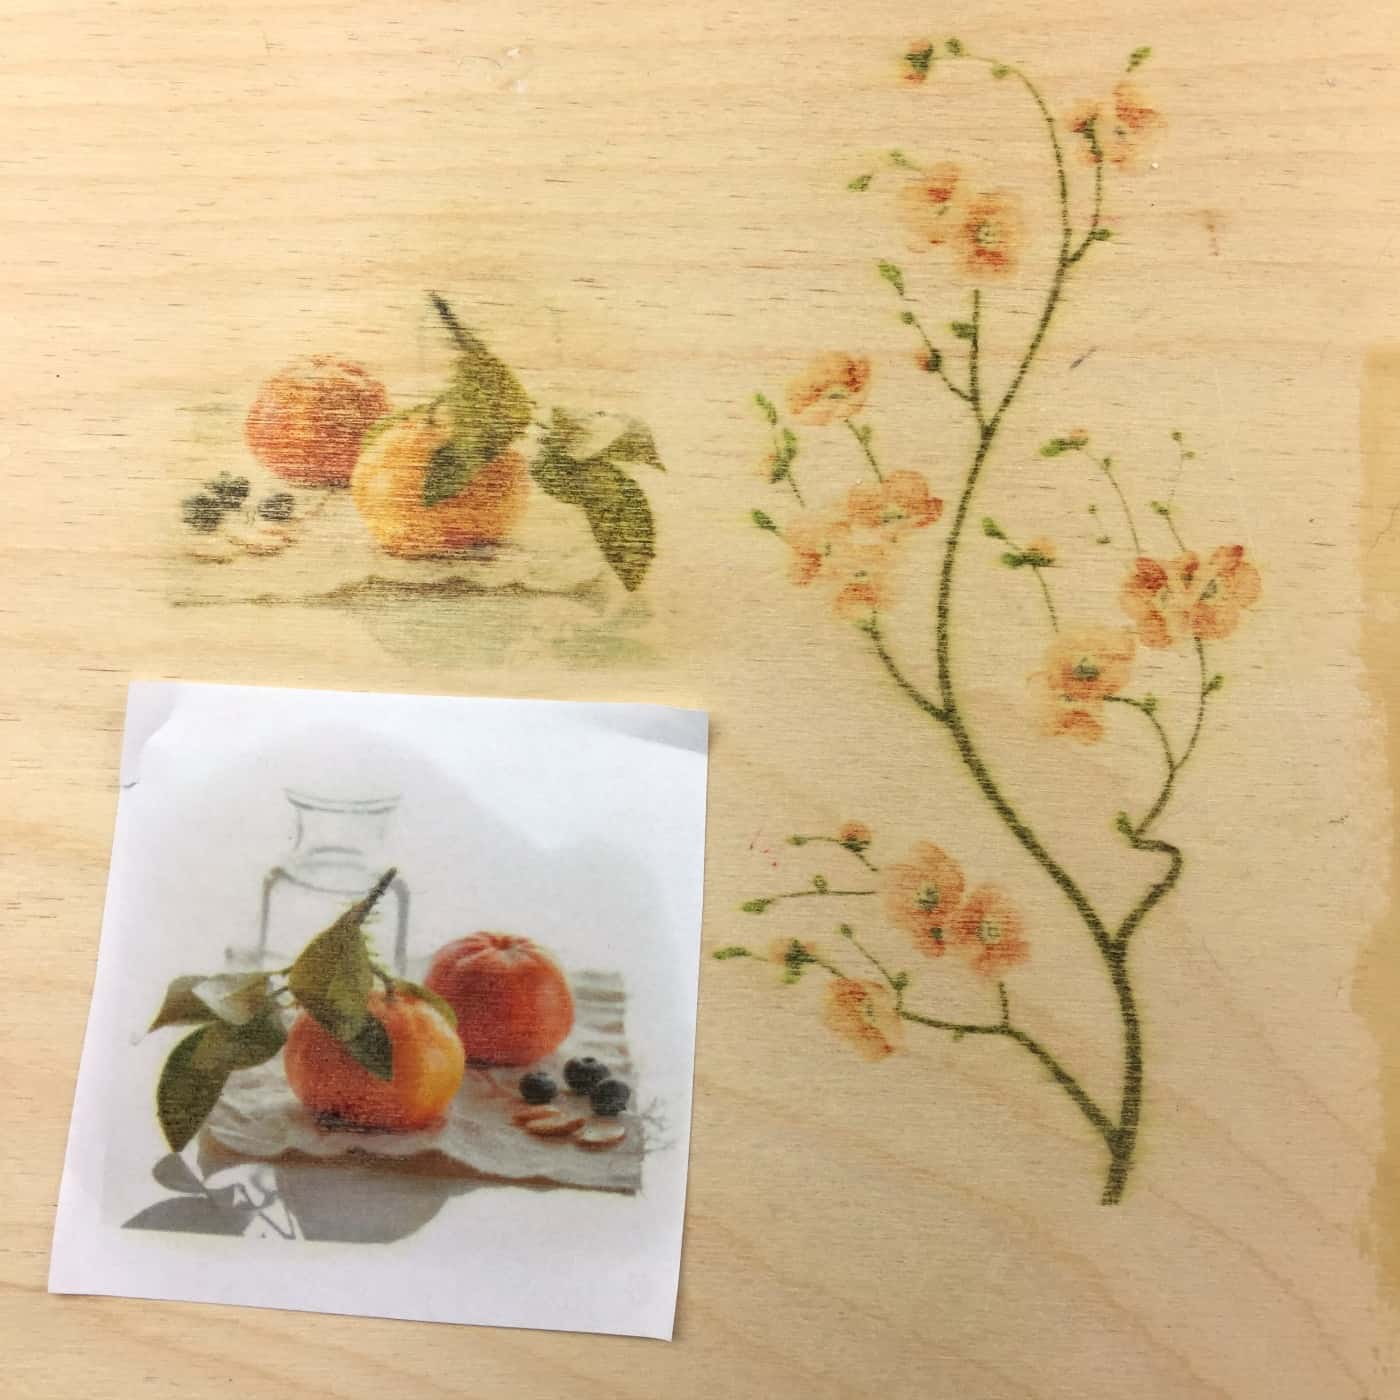 fruit and flower branch images transferred onto wood with blender pen